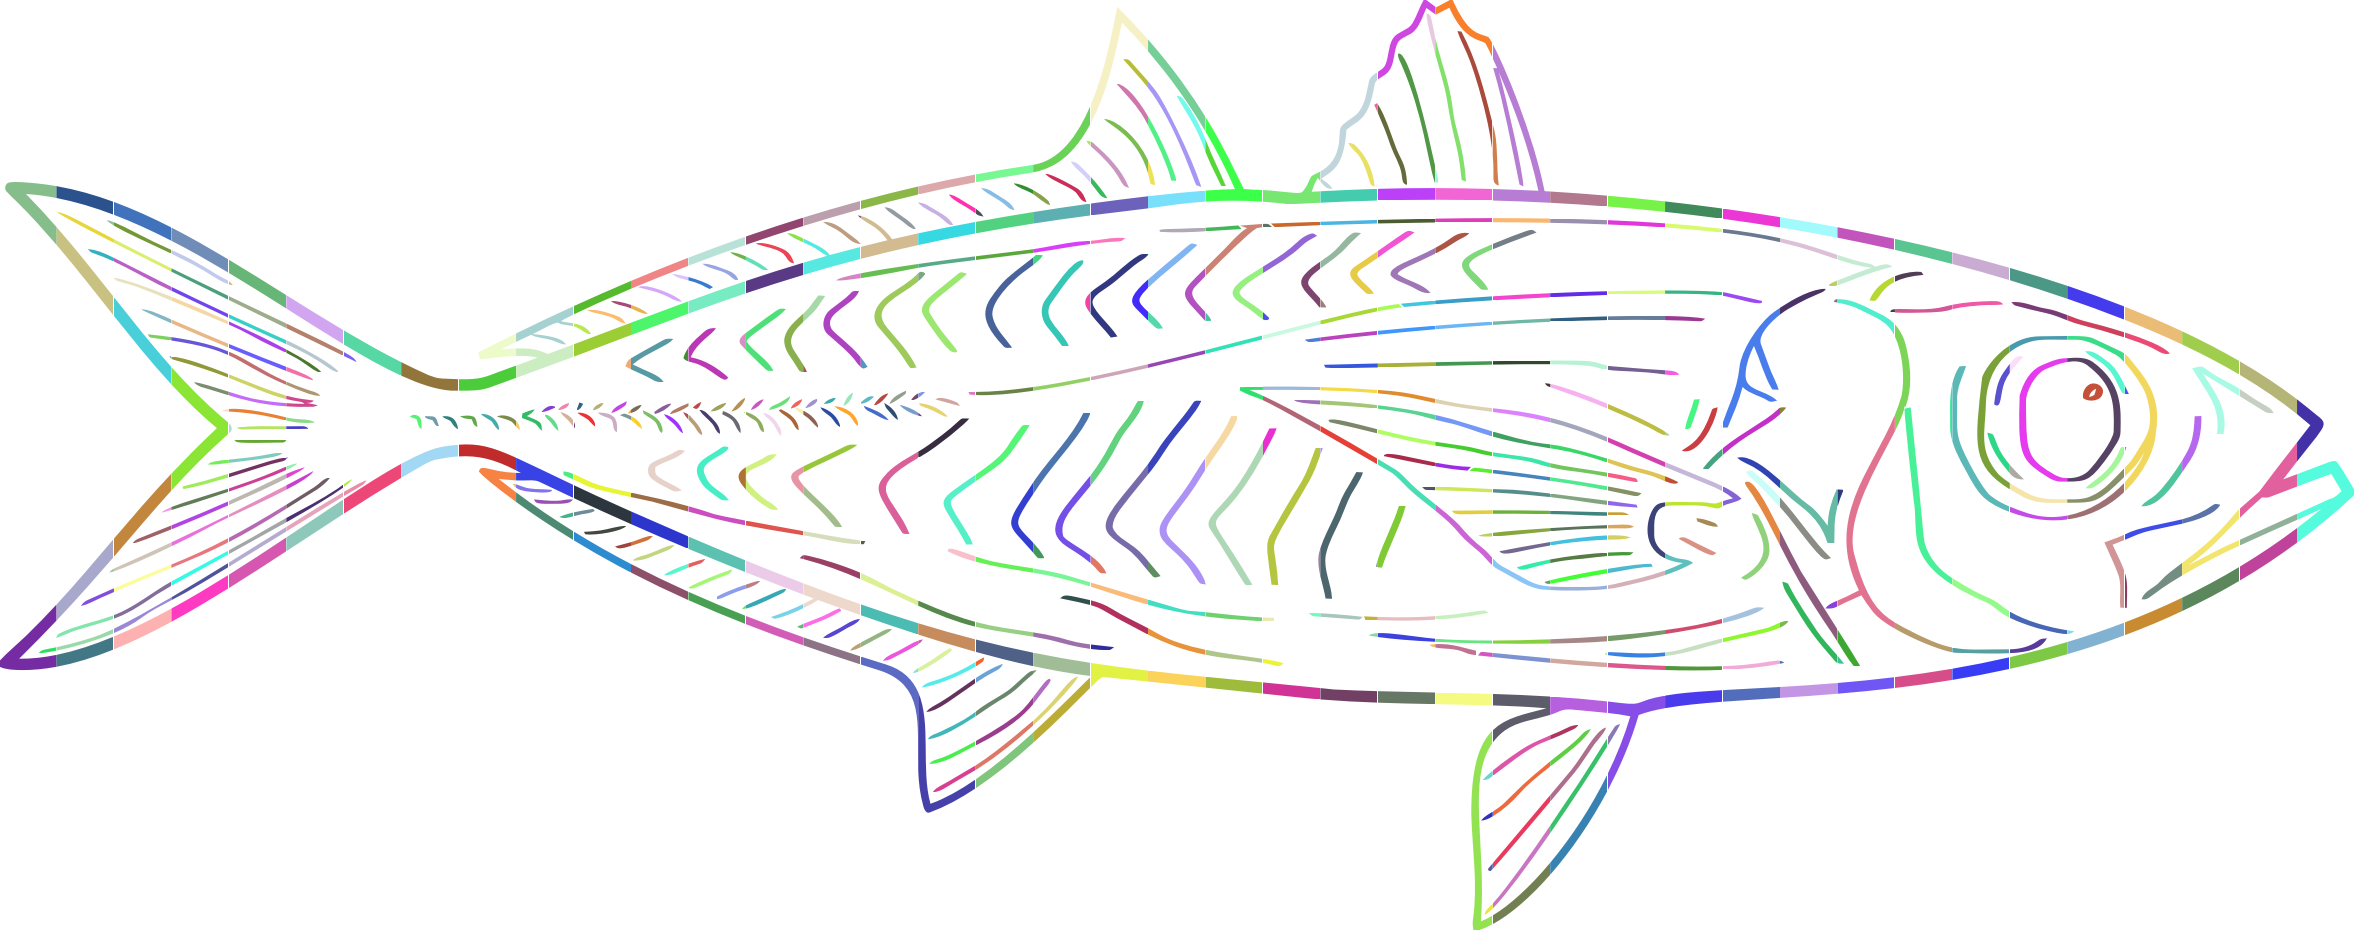 Prismatic Fish Line Art by GDJ